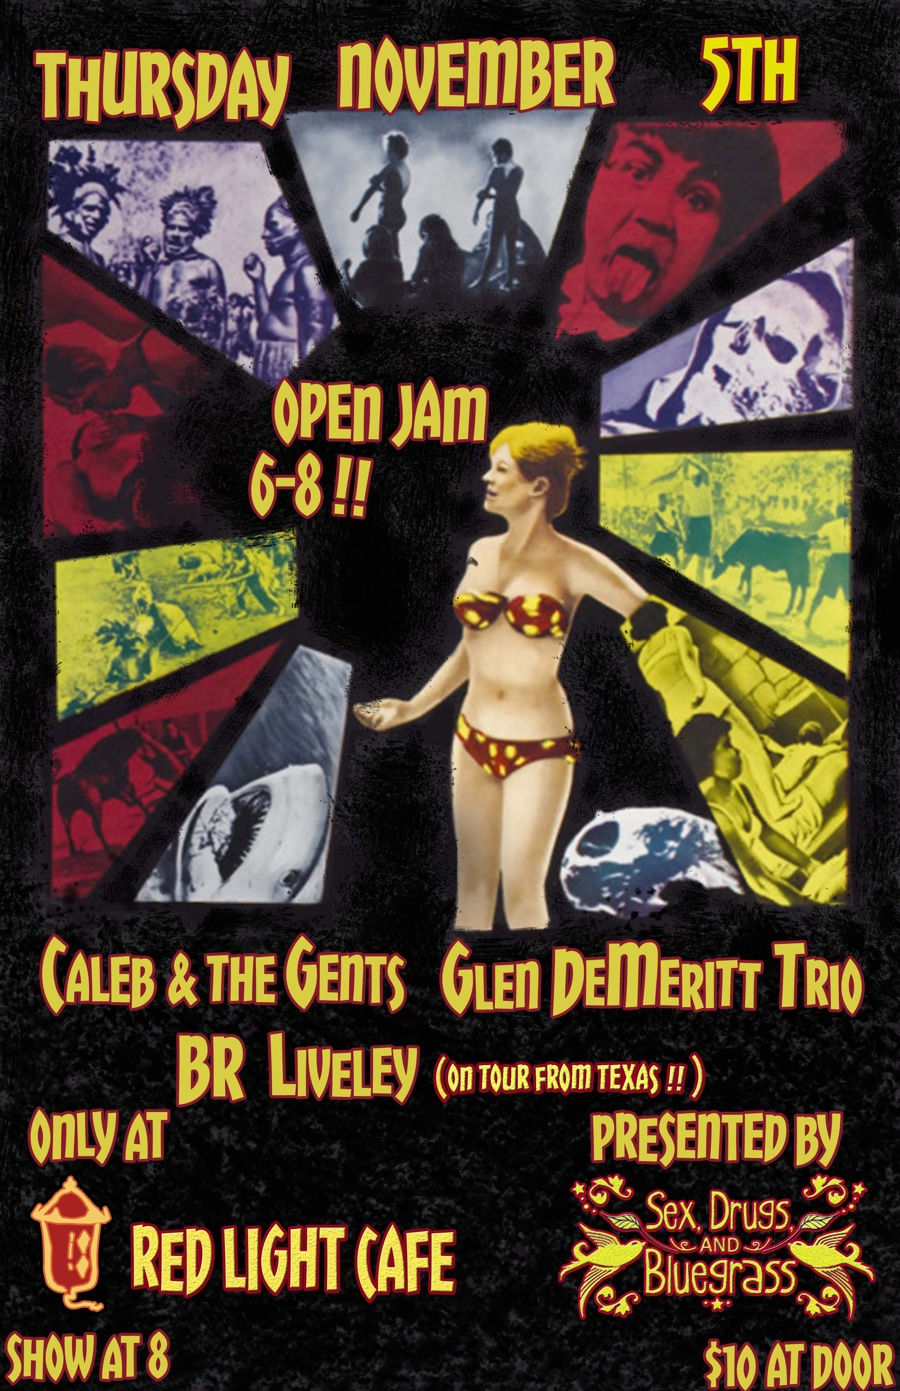 Caleb & The Gents + Glen DeMeritt Trio + B.R. Lively — November 5, 2015 — Red Light Café, Atlanta, GA